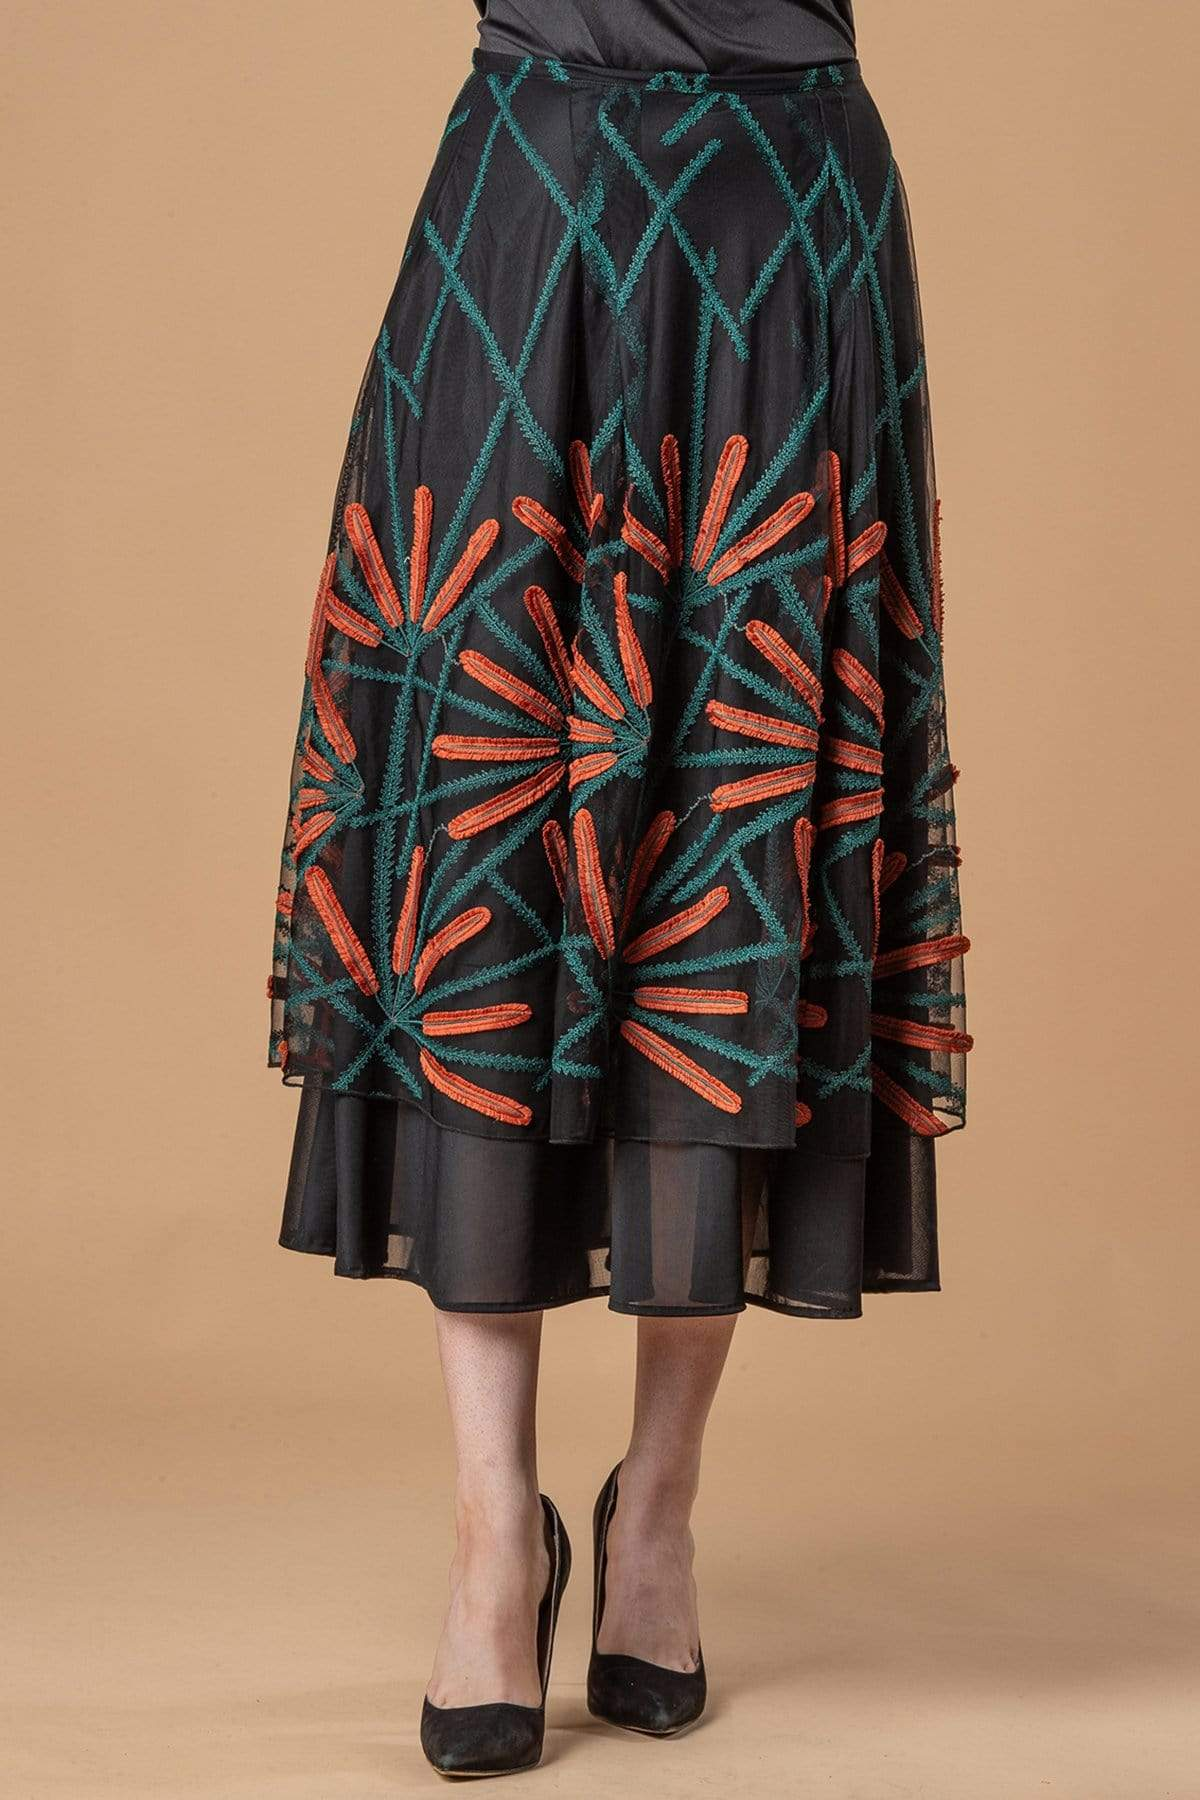 Eva Franco Skirt Flannery Skirt - Cattail